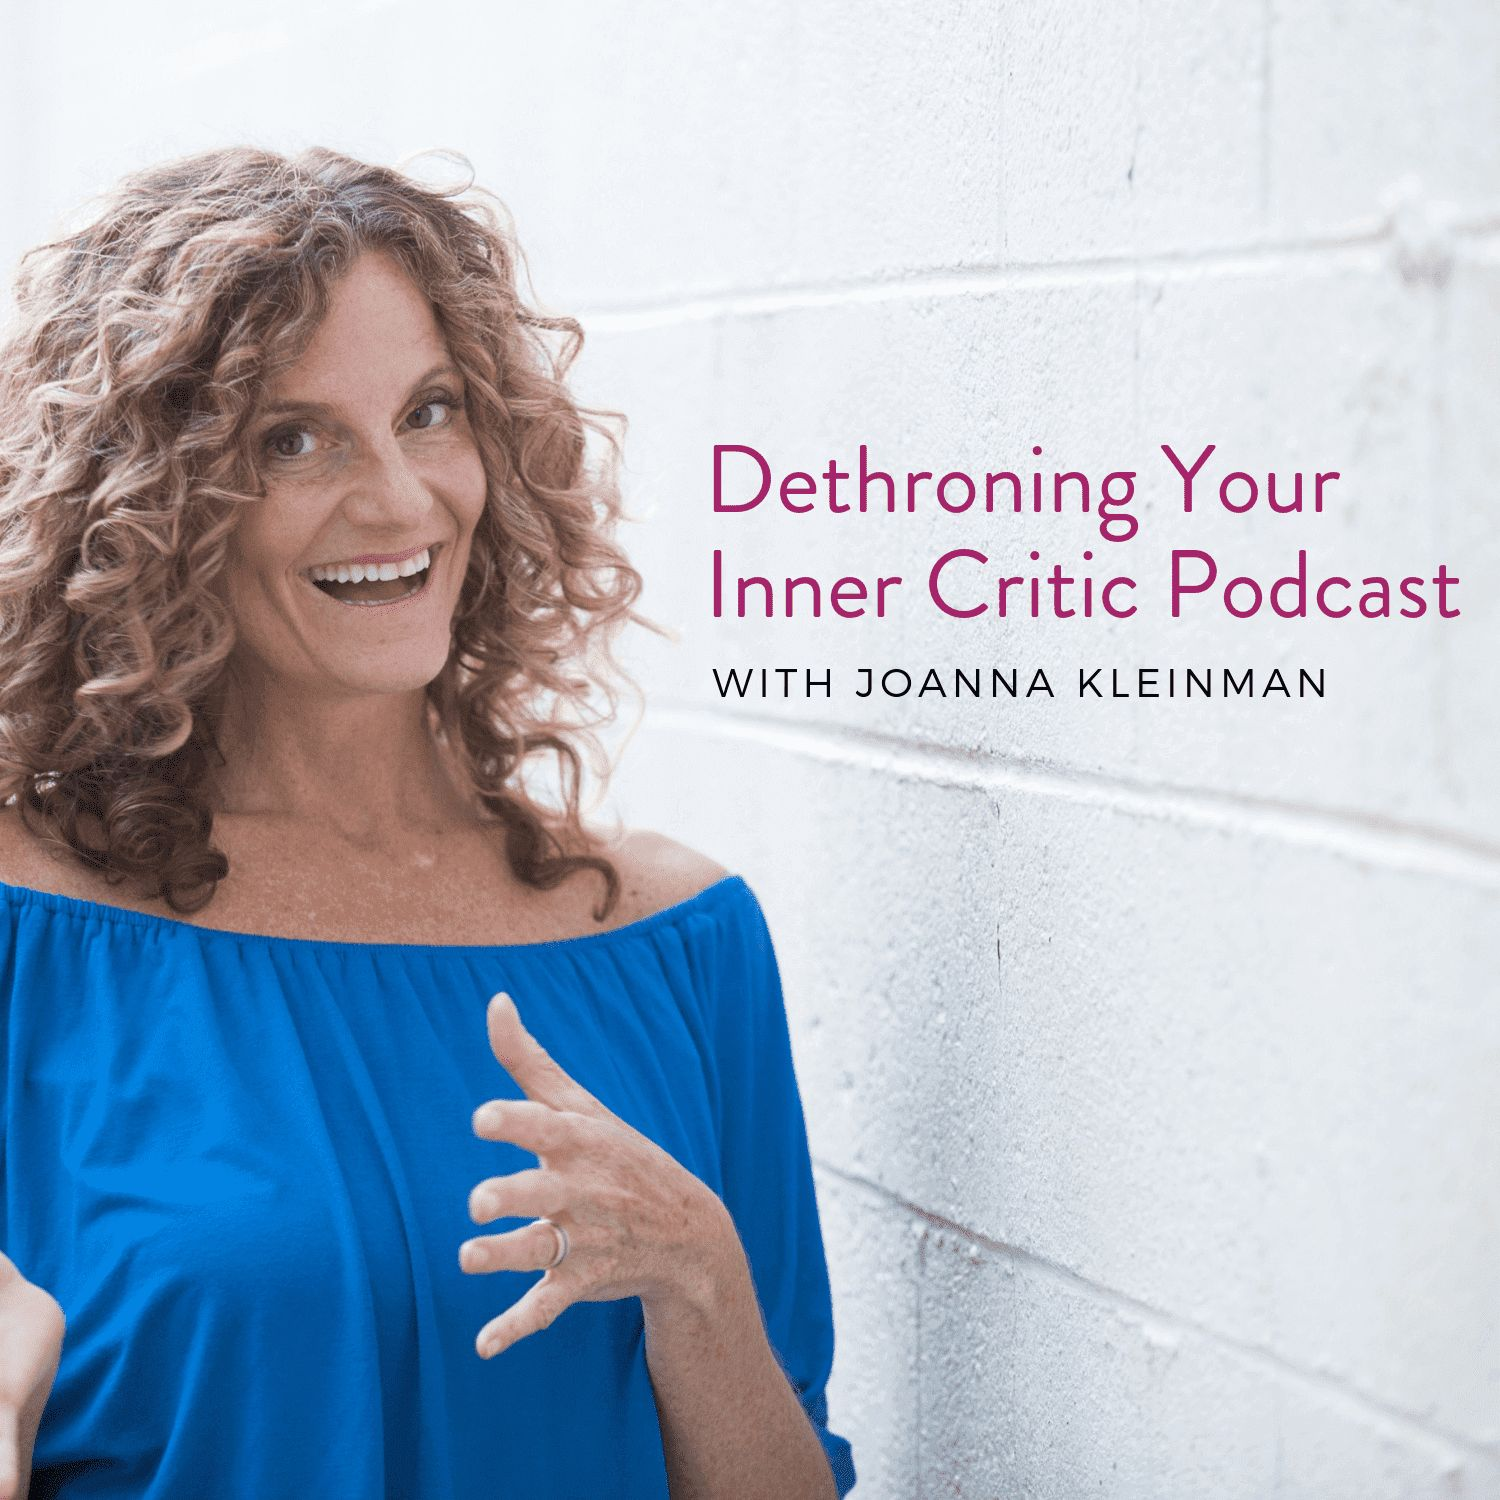 Dethroning Your Inner Critic Podcast show art